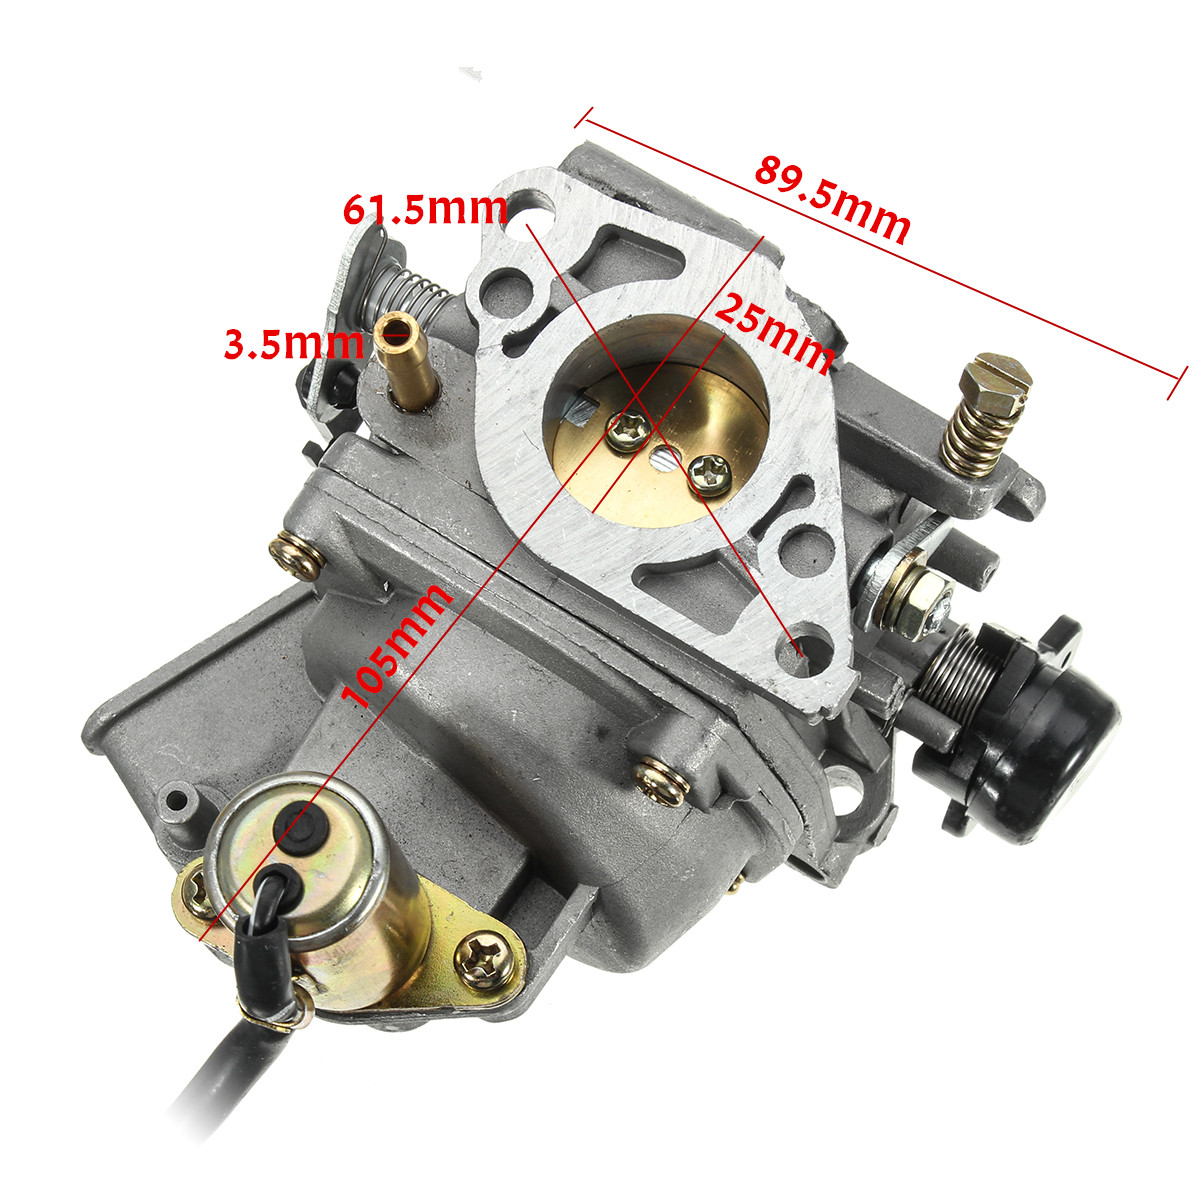 hight resolution of carburetor fuel pump gas air filter for honda gx620 20hp gx610 18hp mower engine